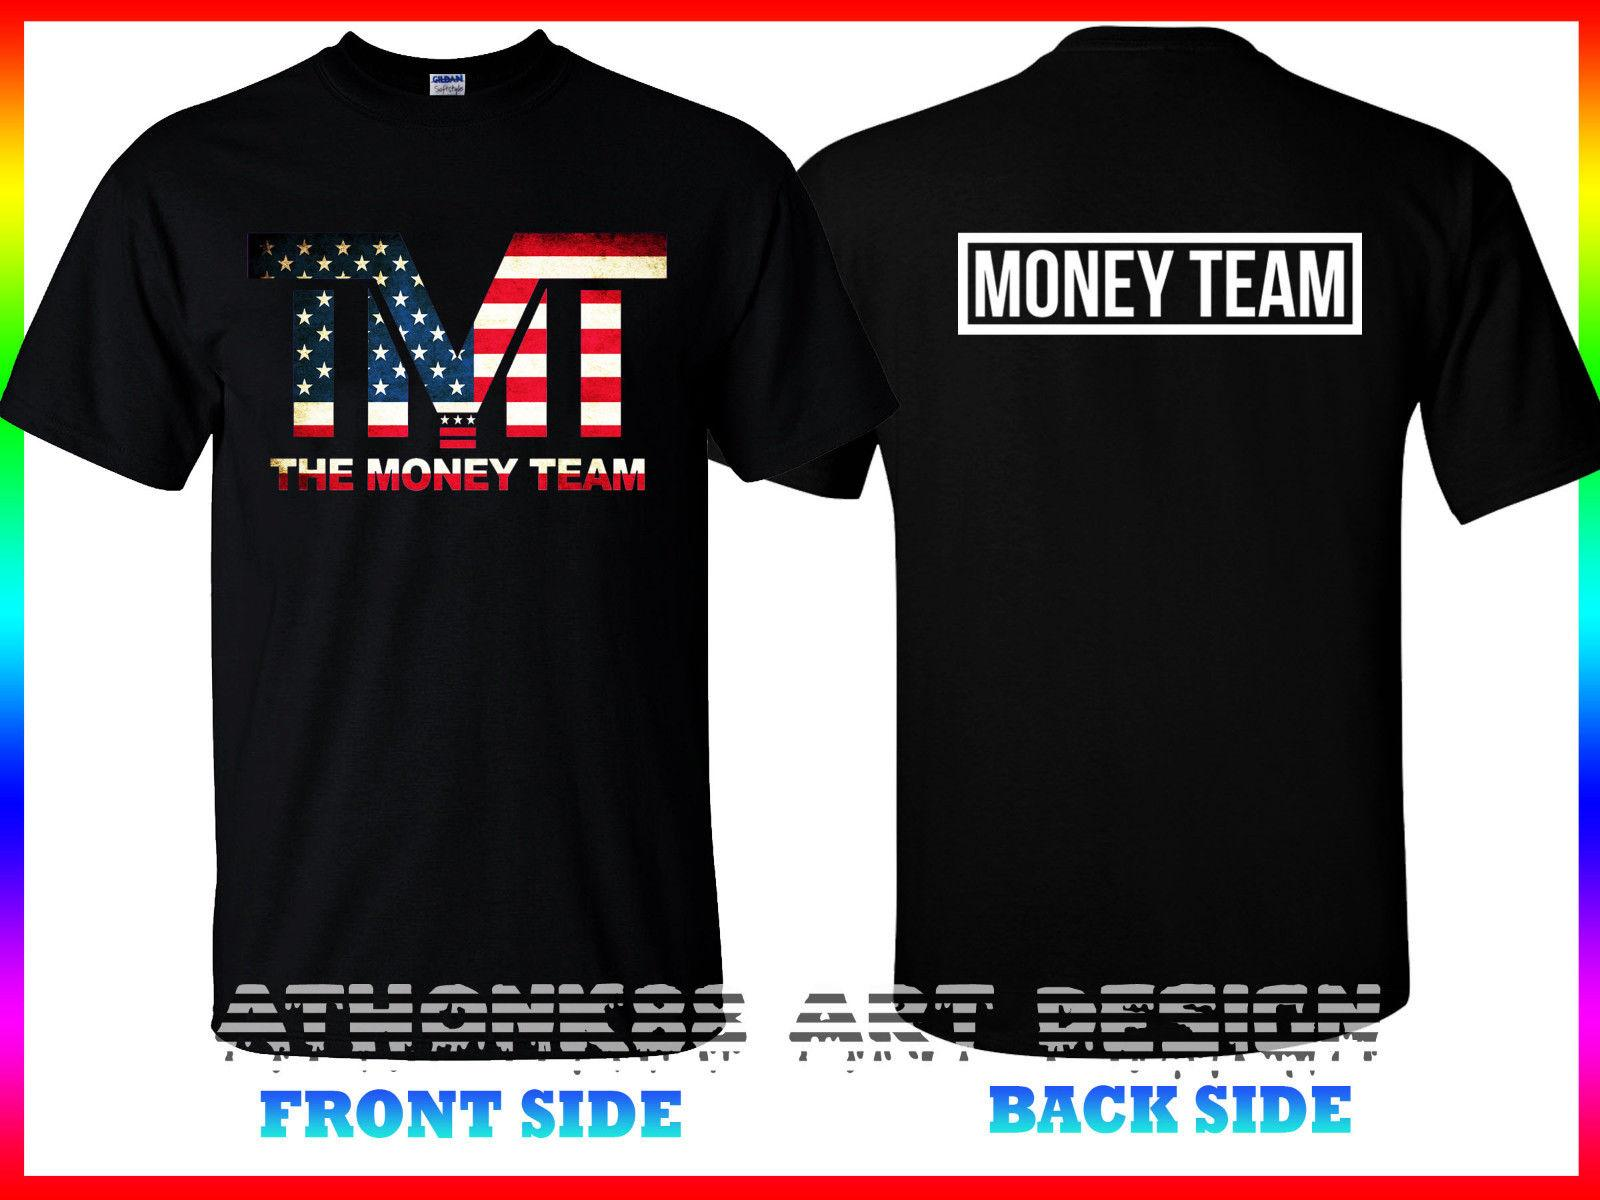 b07e9d441 The Money Team Mayweather U.S.A T SHIRT SIZE S 3XL Tee Shirts Online  Shopping T Shirts Shop Online From Marcusdover, $11.01| DHgate.Com